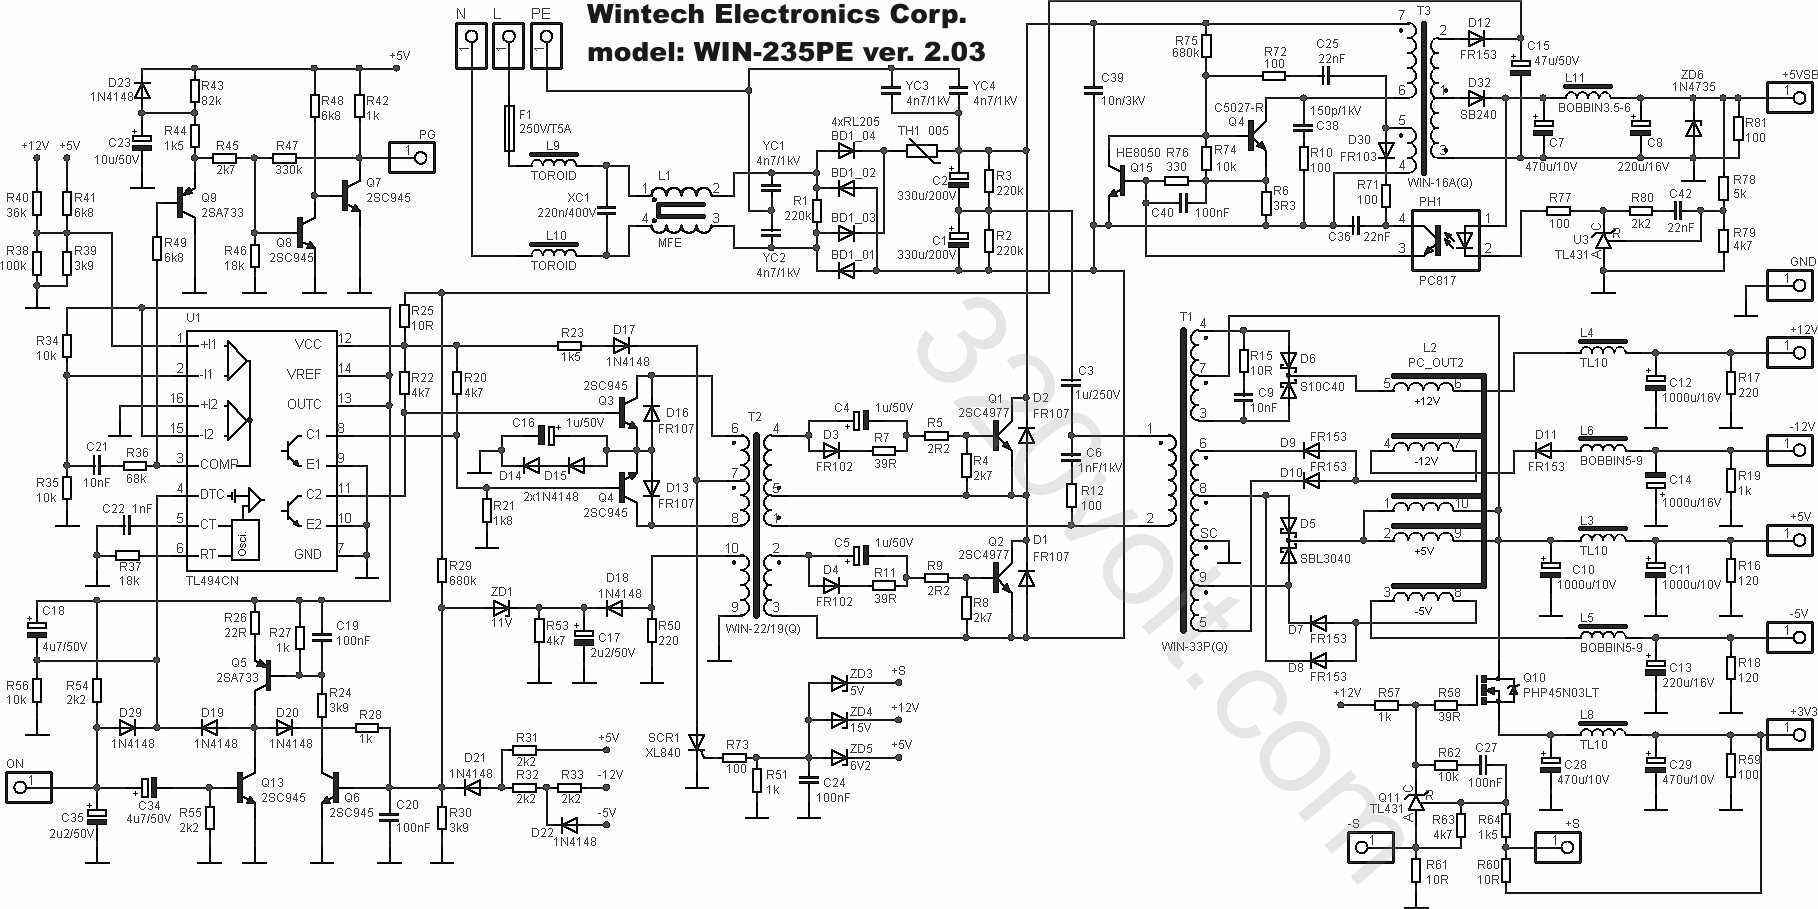 30   Plug Wiring Diagram moreover Onan Generator Wiring Diagram Need Schematic Drawing Of Onan 300 370 Onan Rv Generator Wiring Diagram Generator Onan Schematic besides Charger To Aux Wiring Diagram furthermore Outdoor Breaker Box together with Tech eremeter. on 50 rv power cord wiring diagram